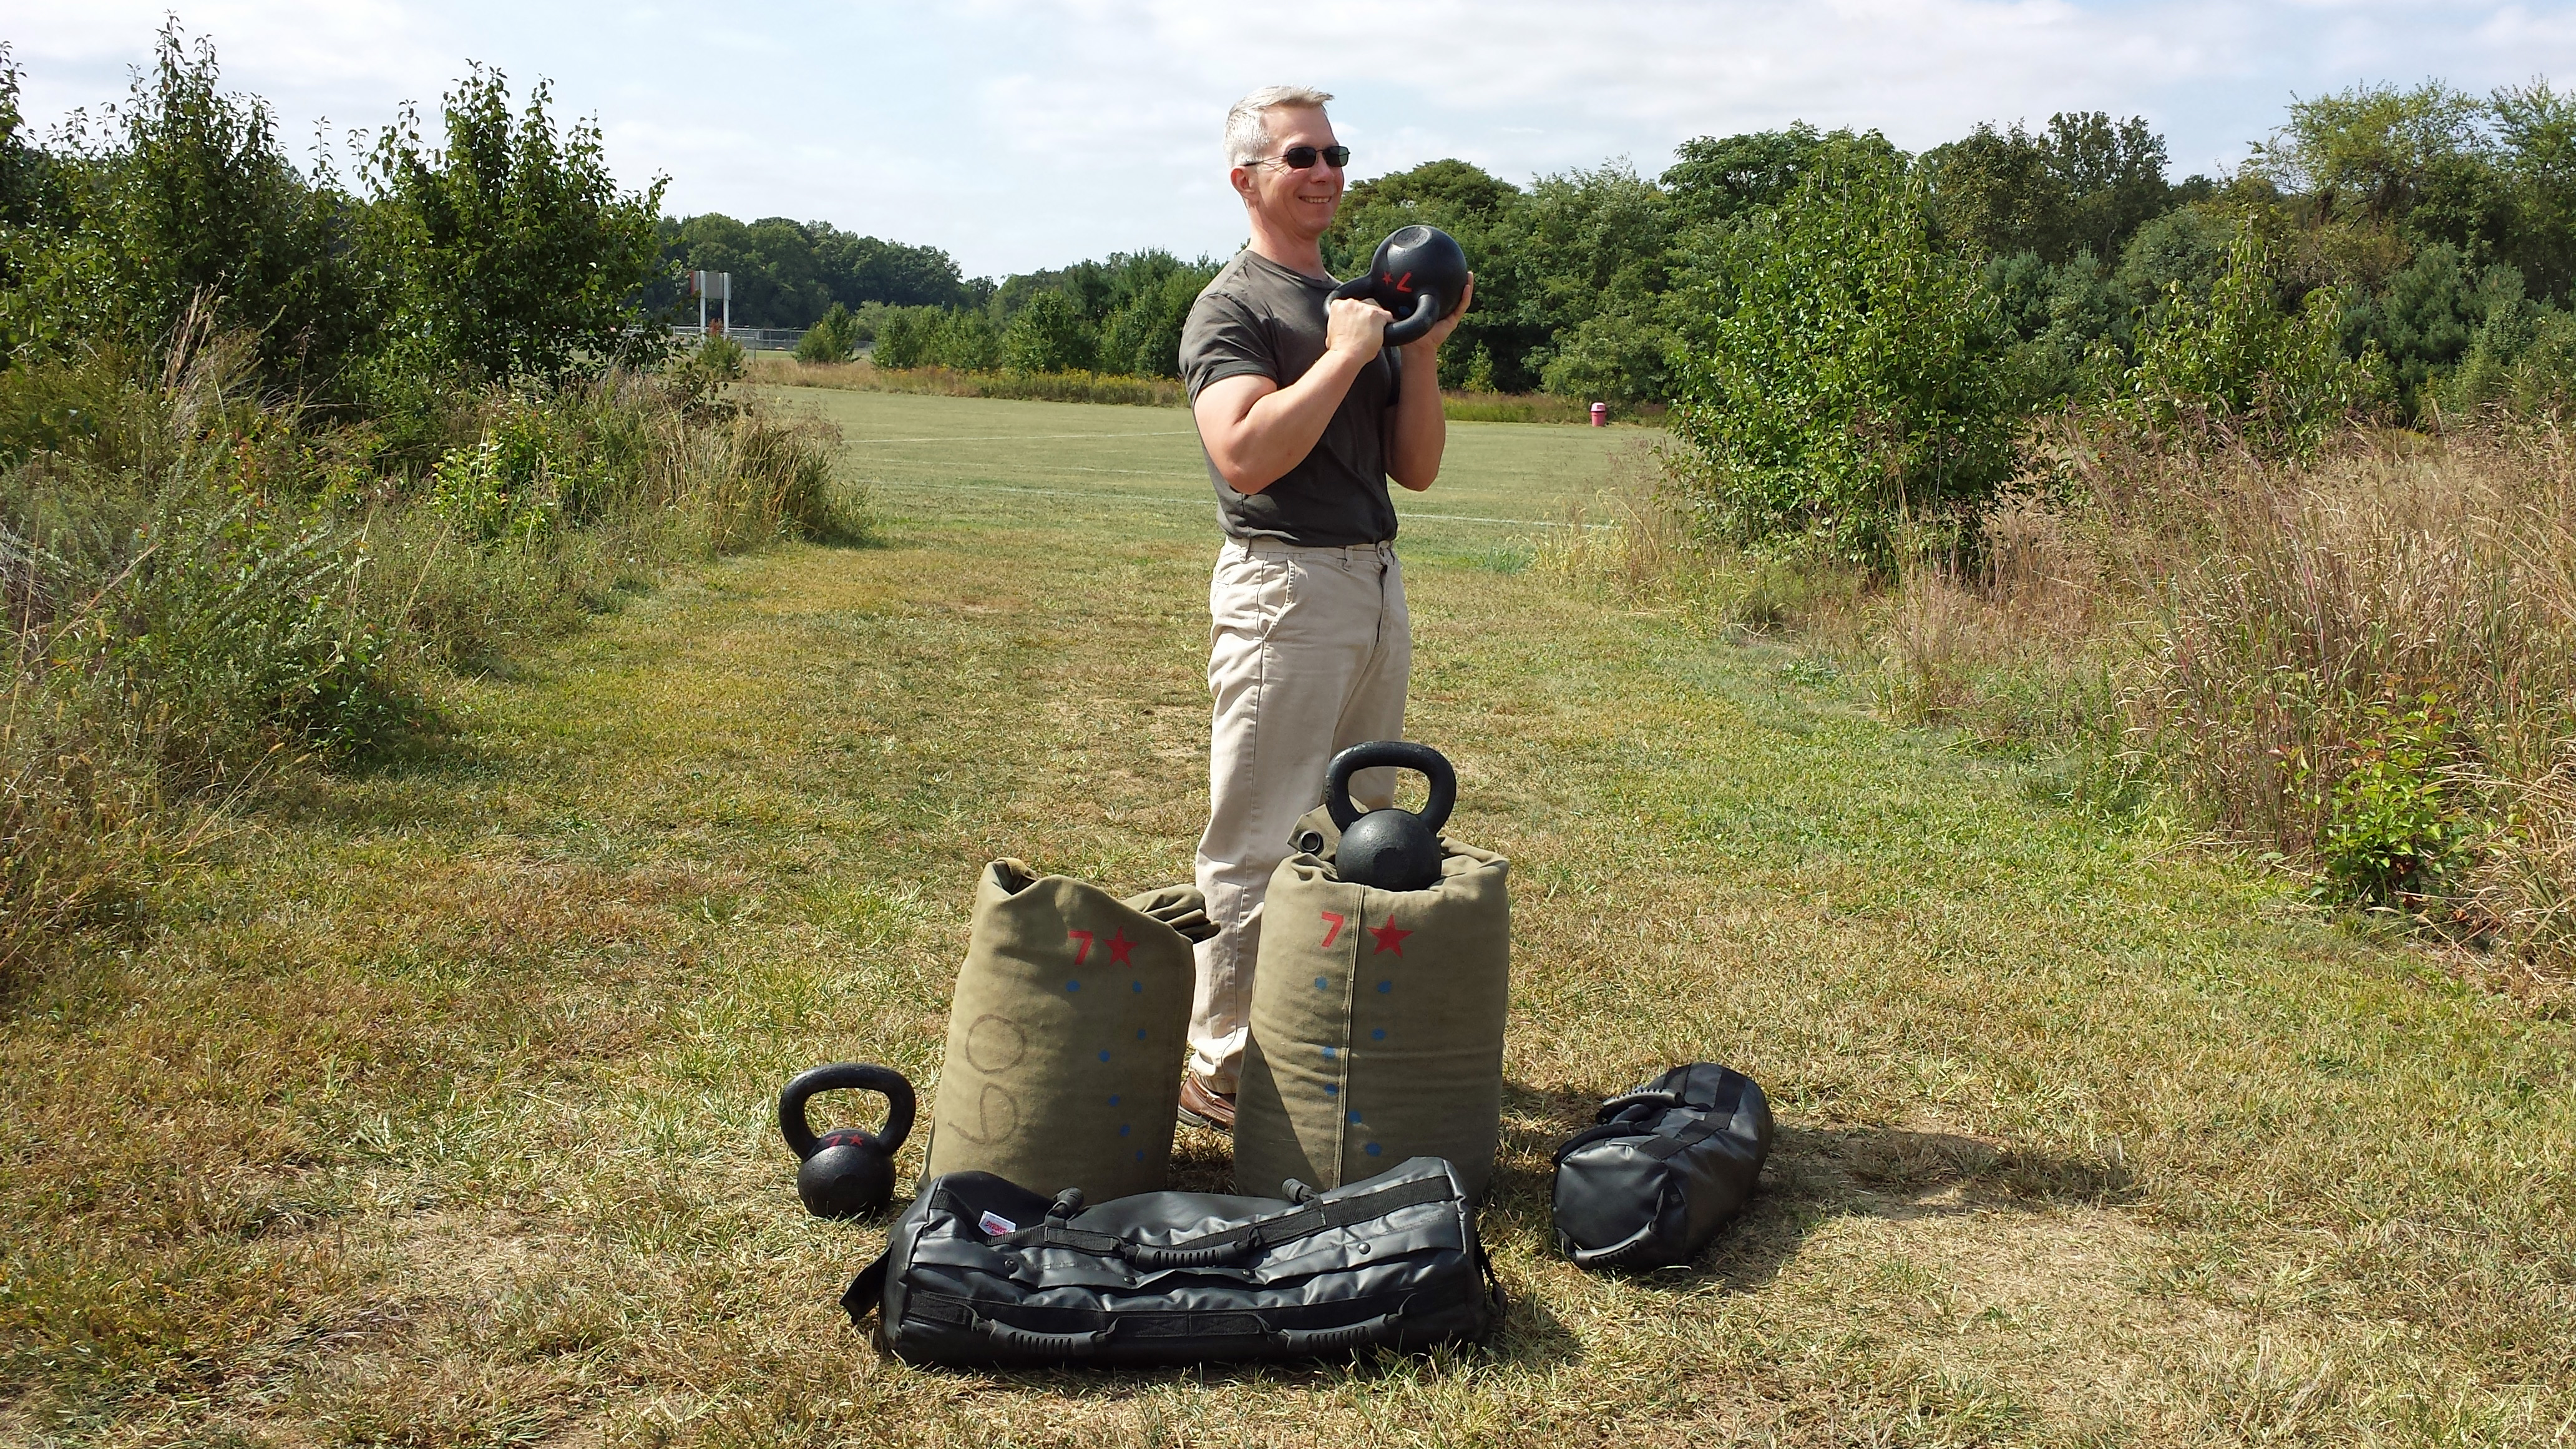 mark mellohusky sandbag and kettlebell carry workout seven stars fitness ultimate sandbag